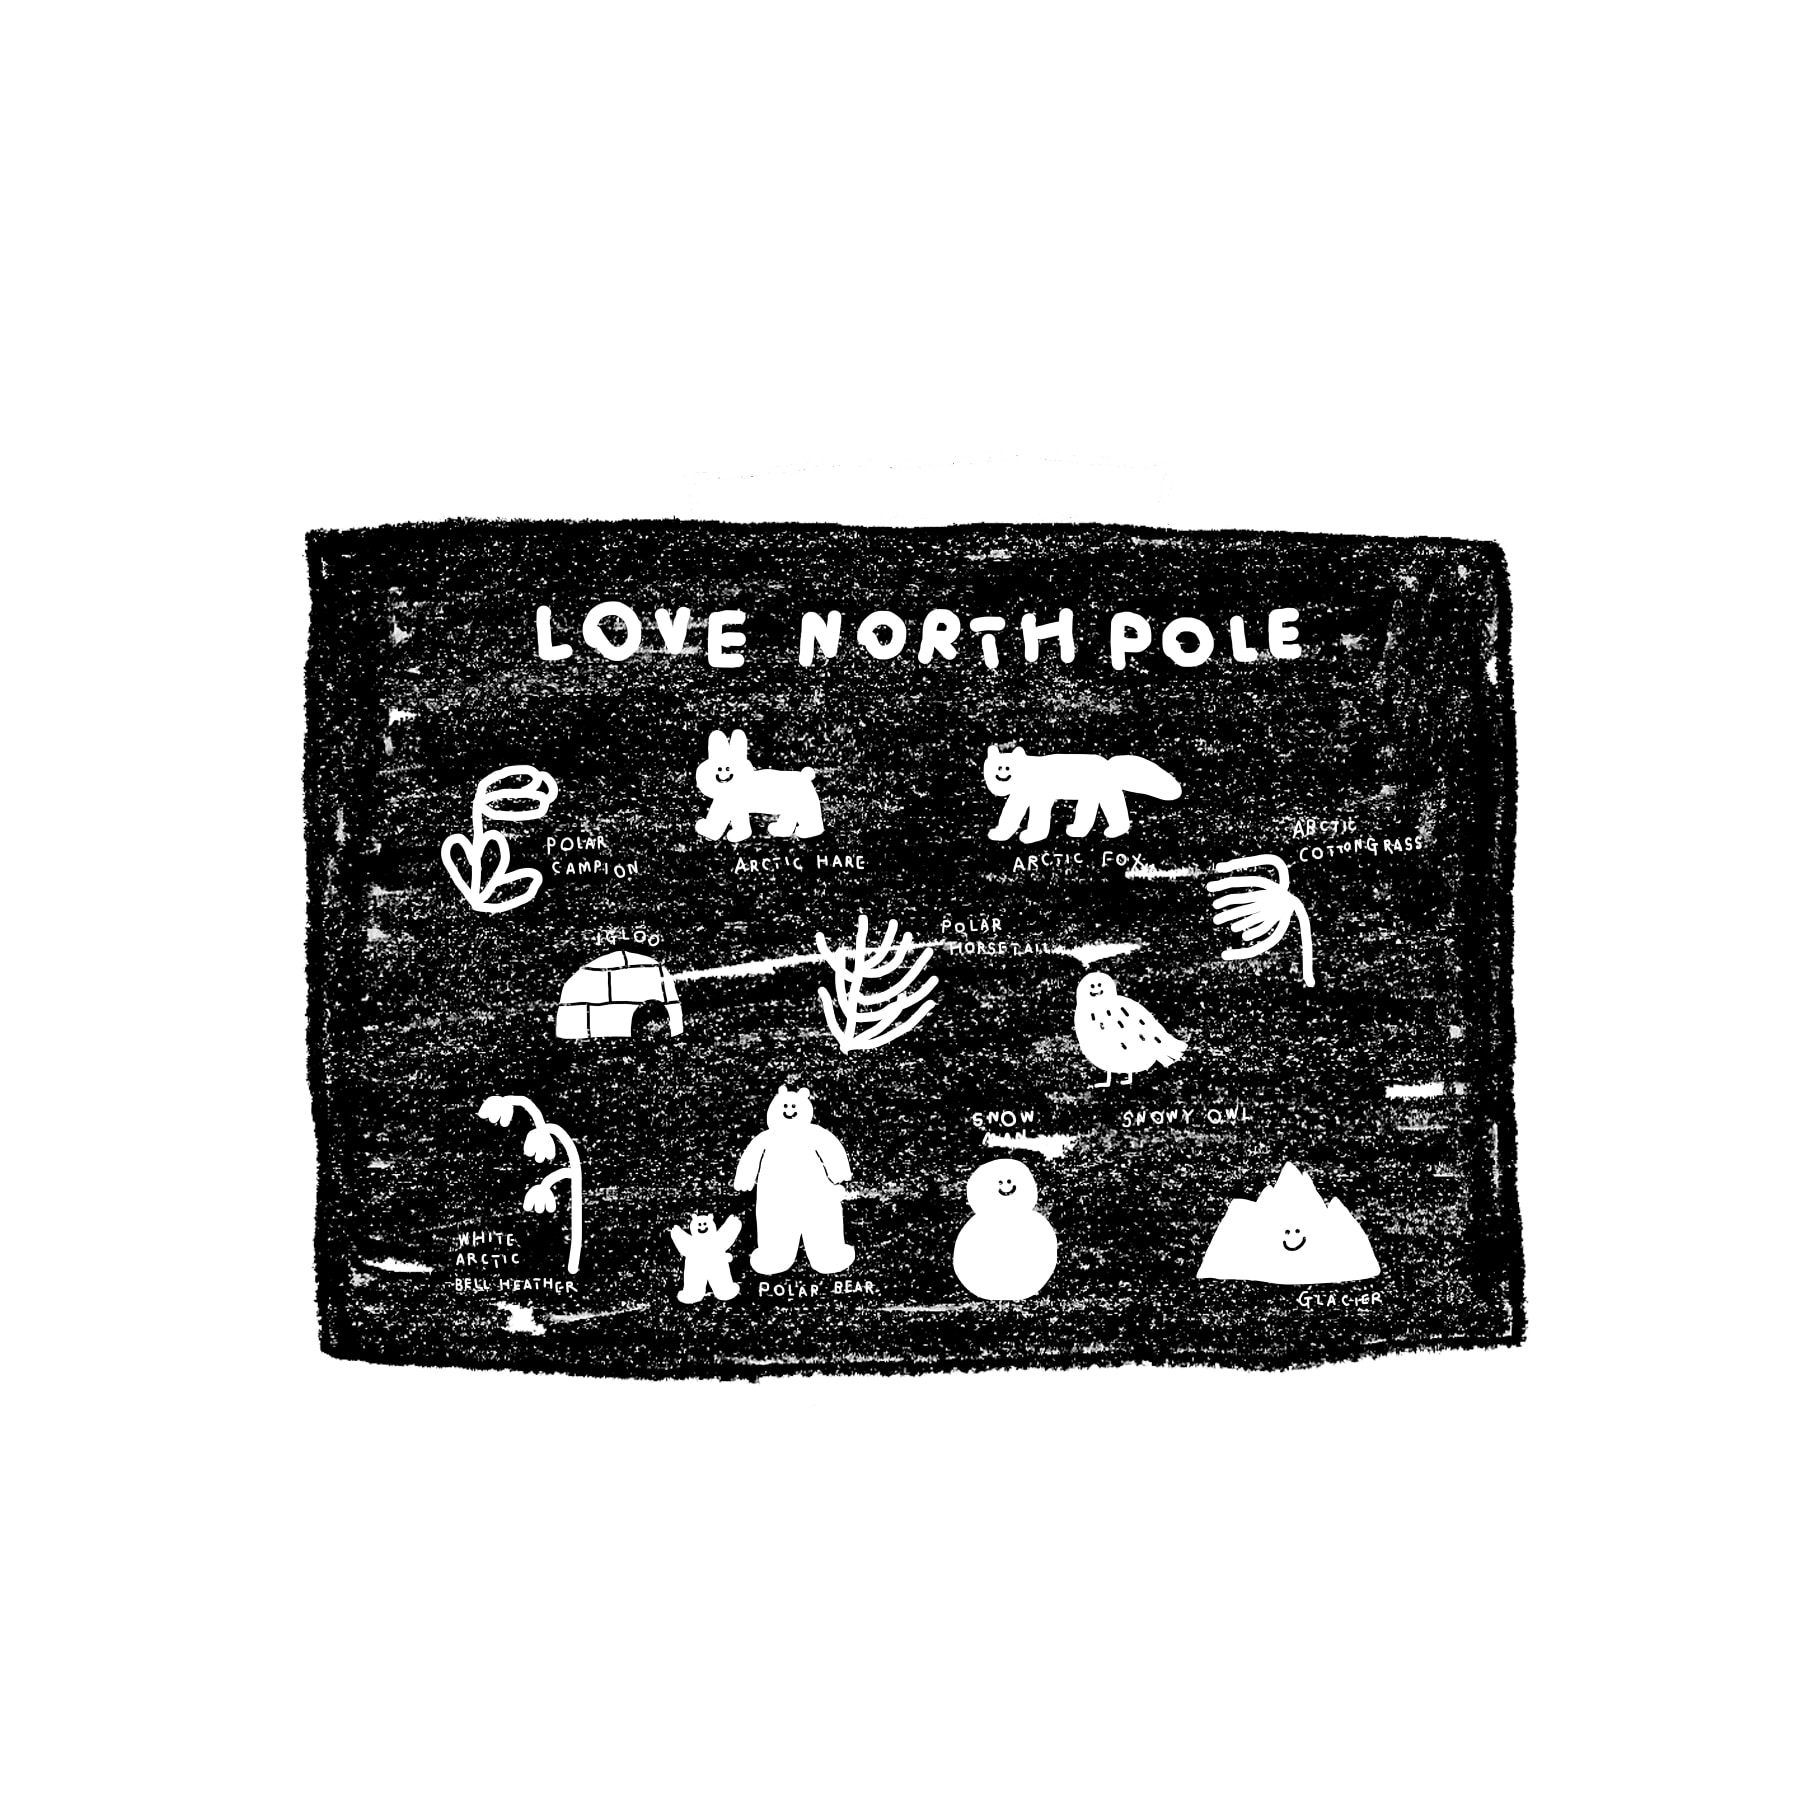 LOVE NORTH POLE FABRIC POSTER